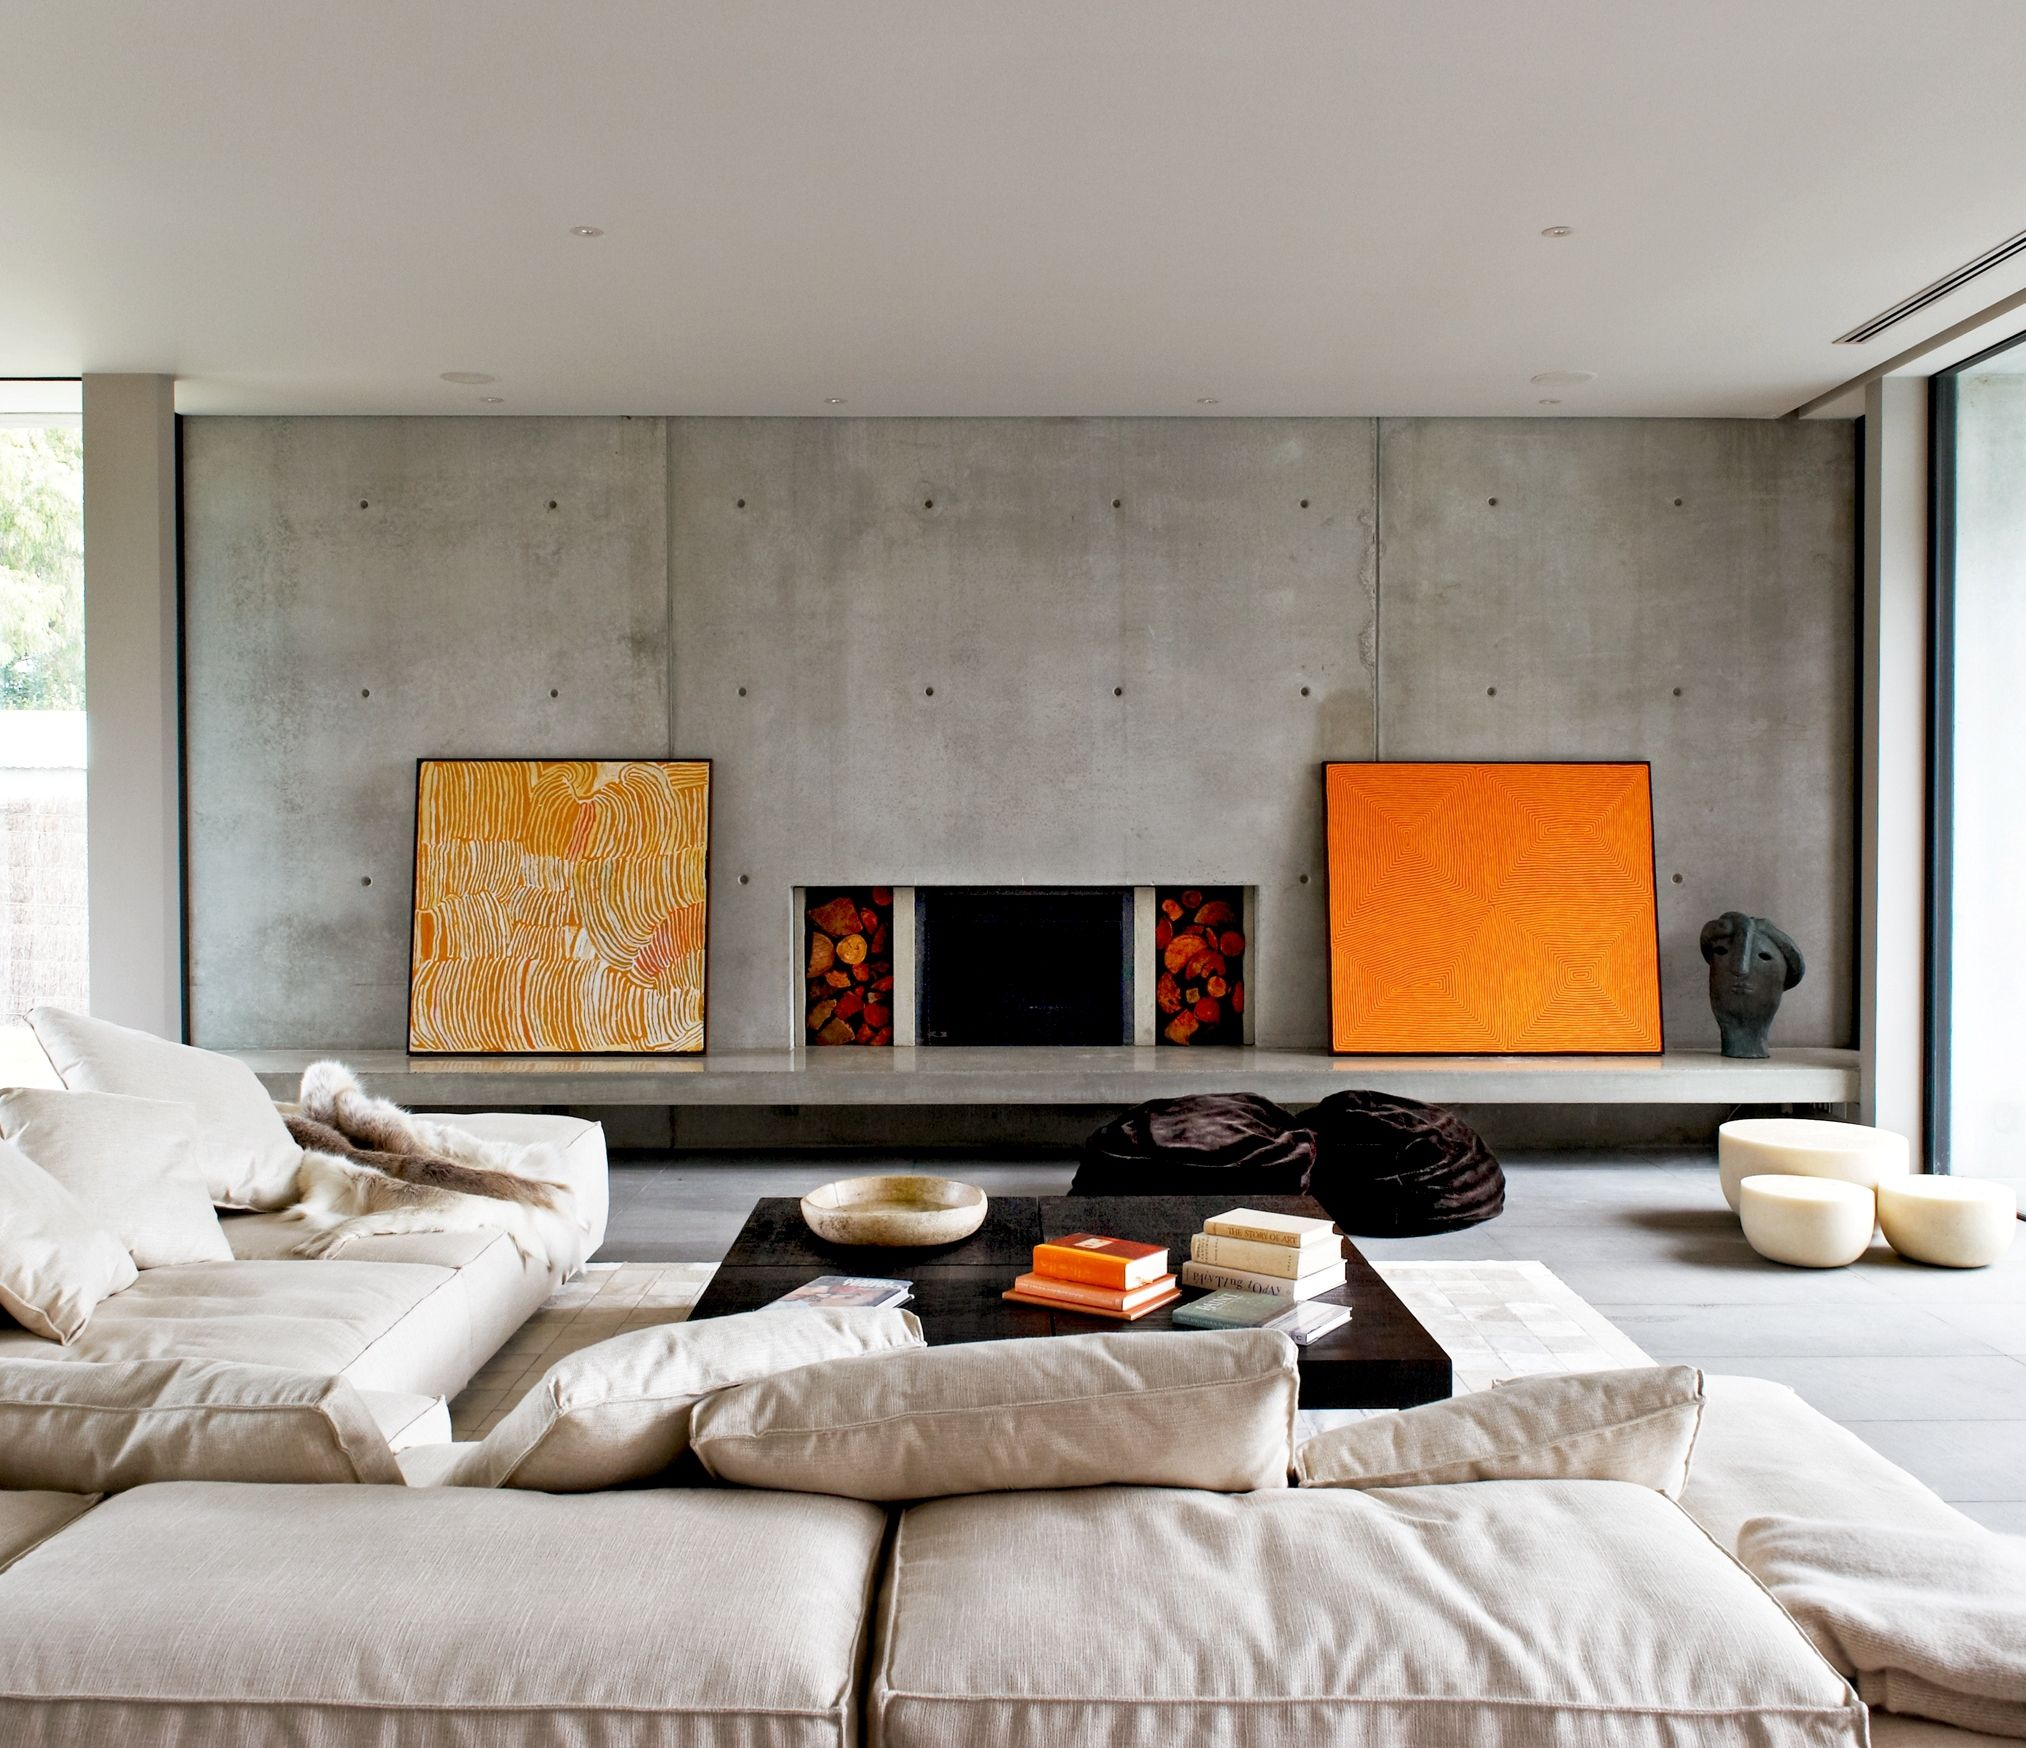 1000+ images about Home Interior Design on Pinterest - ^